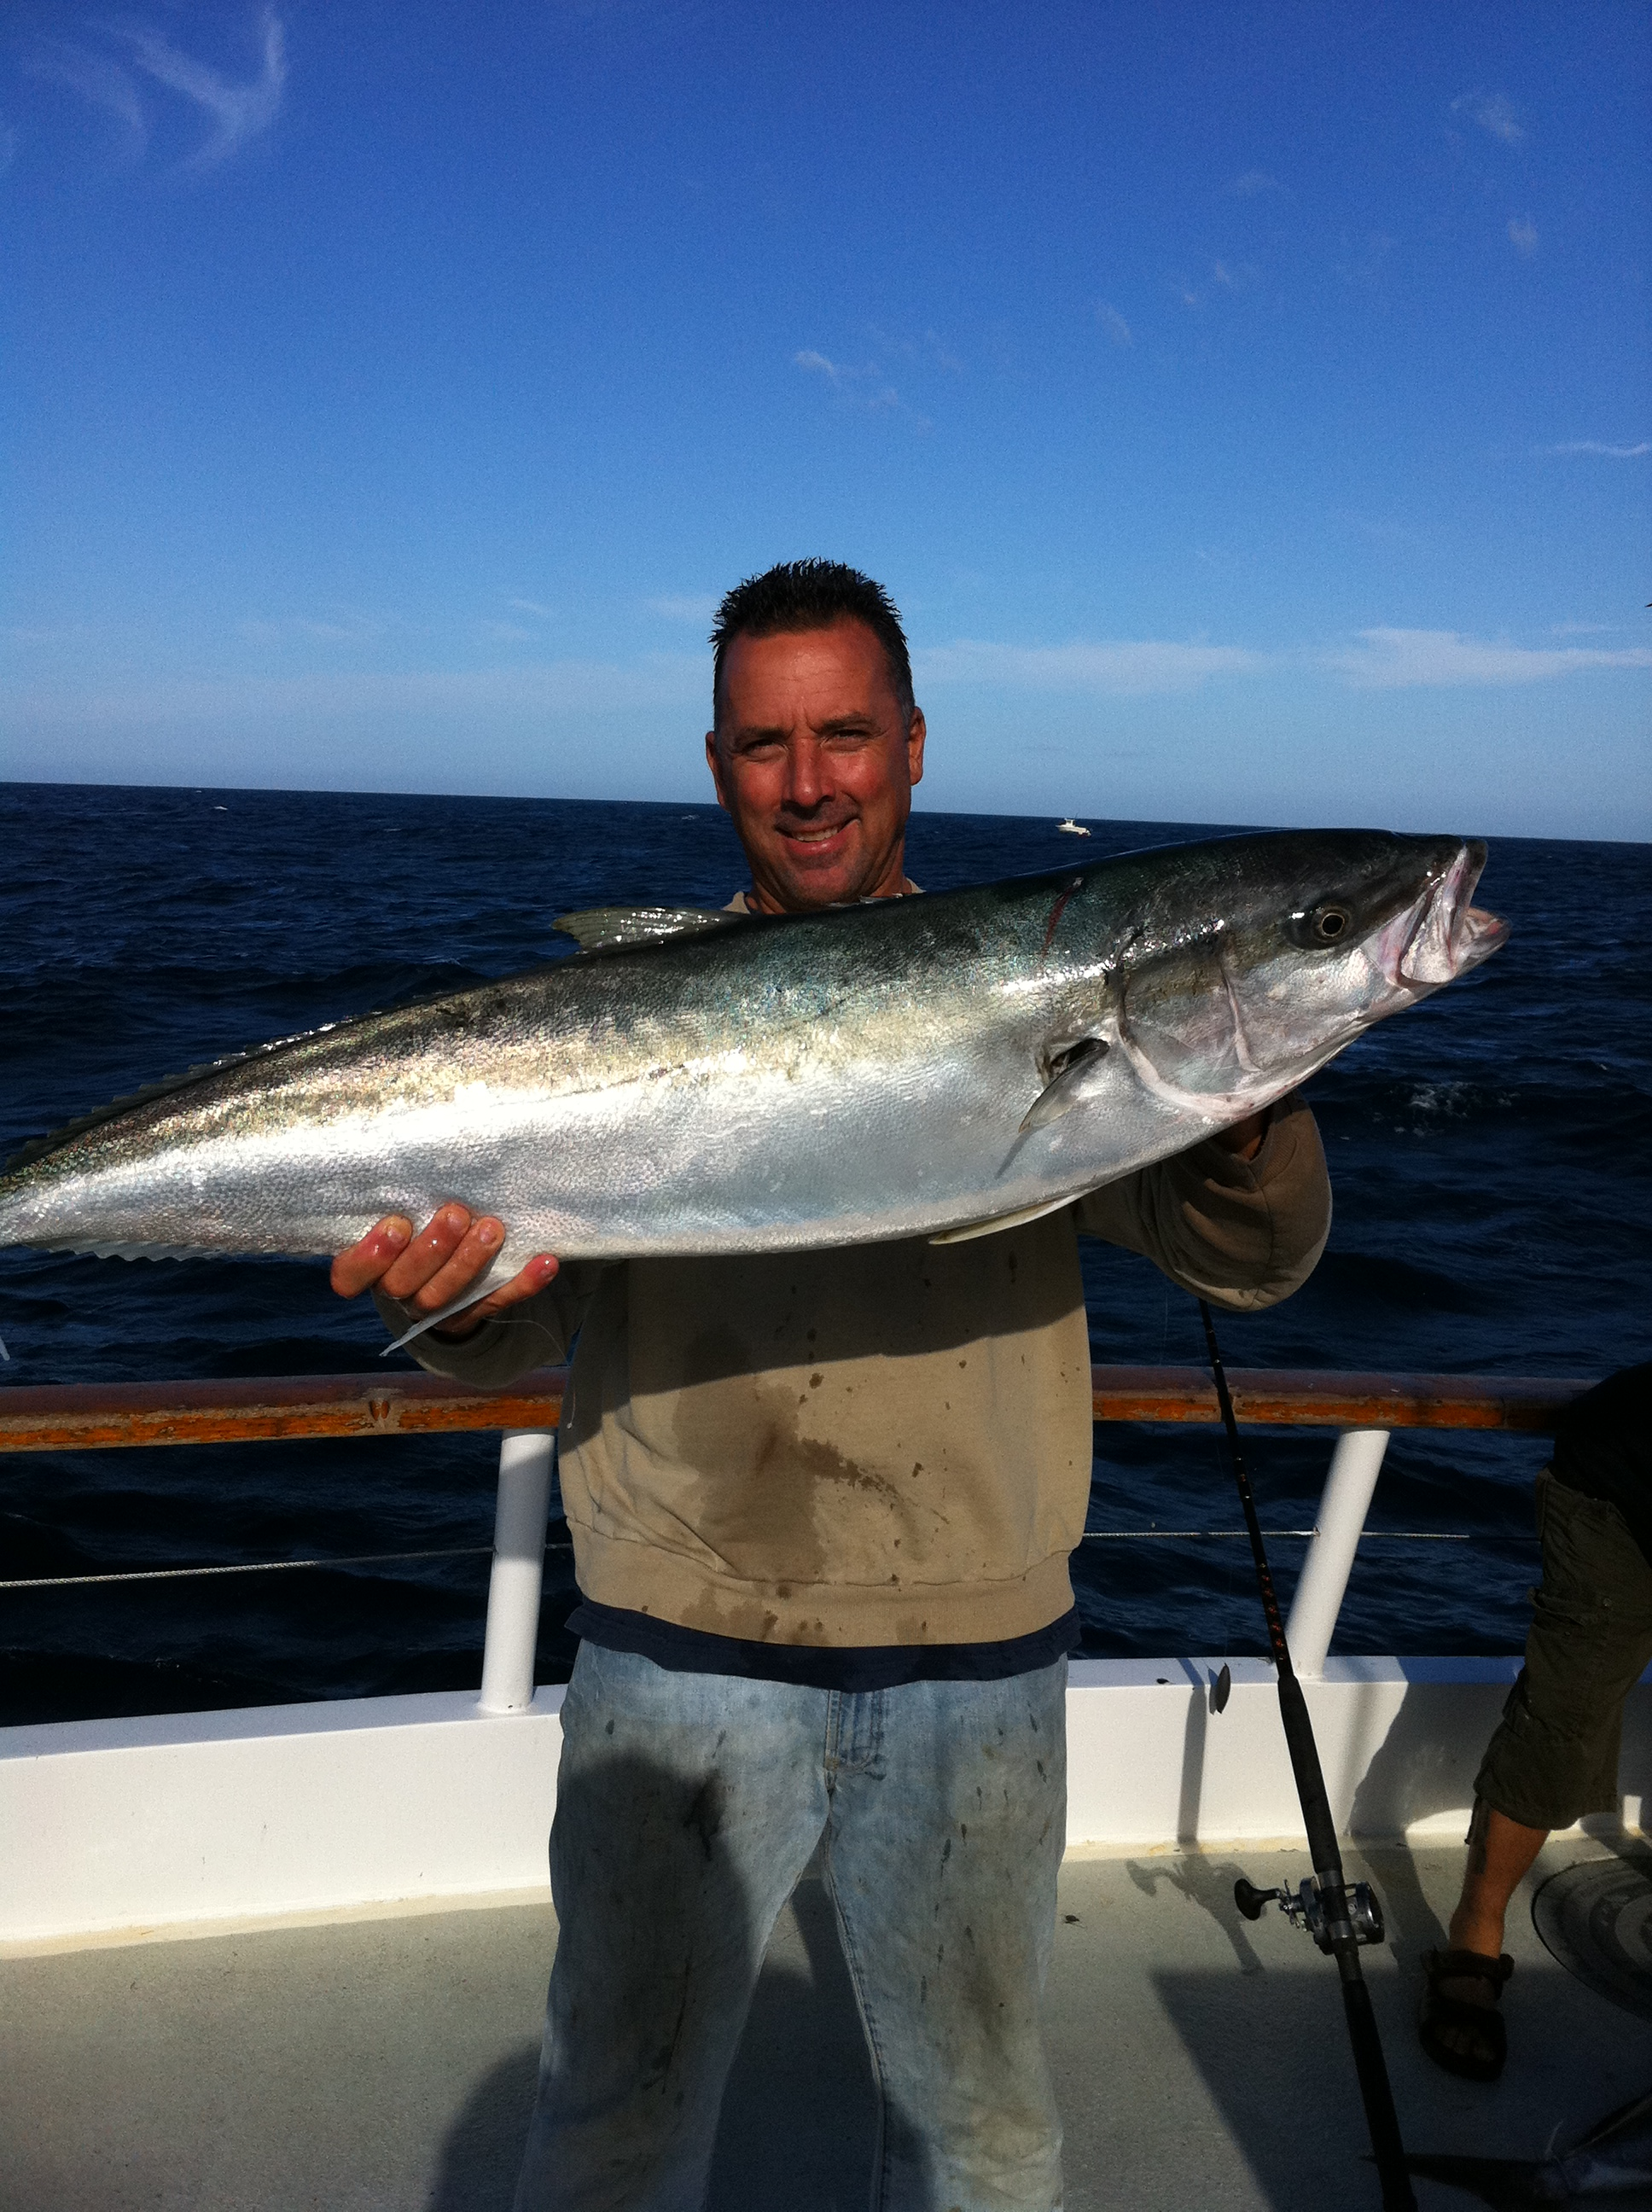 Trip report am new seaforth socalsalty for Seaforth landing fish report